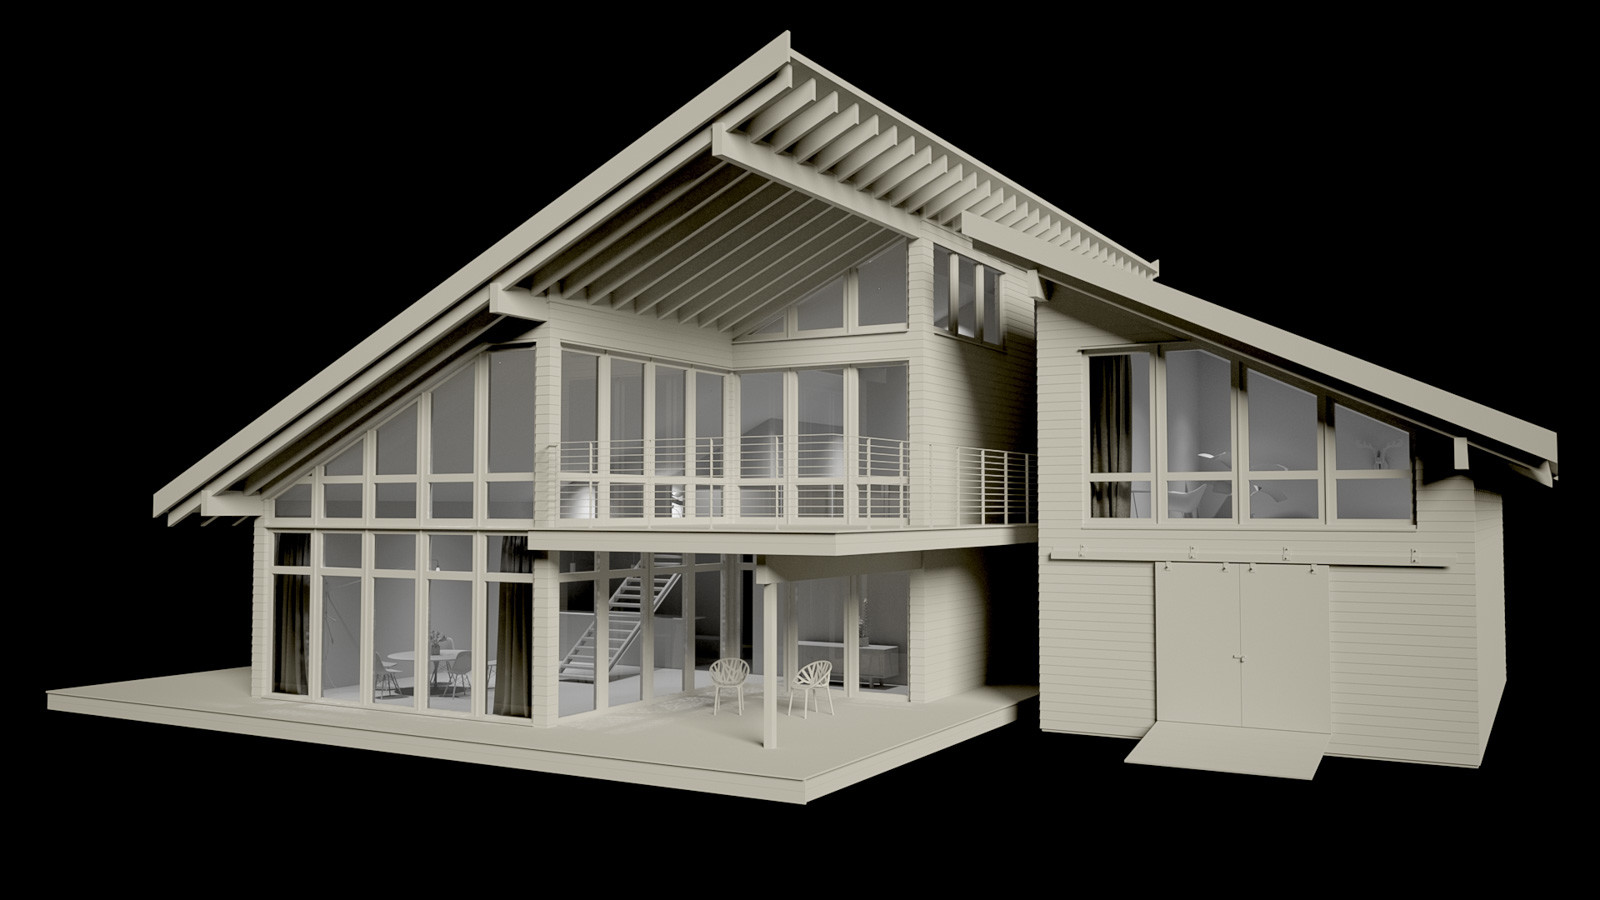 Architectural visualisation - Step 01